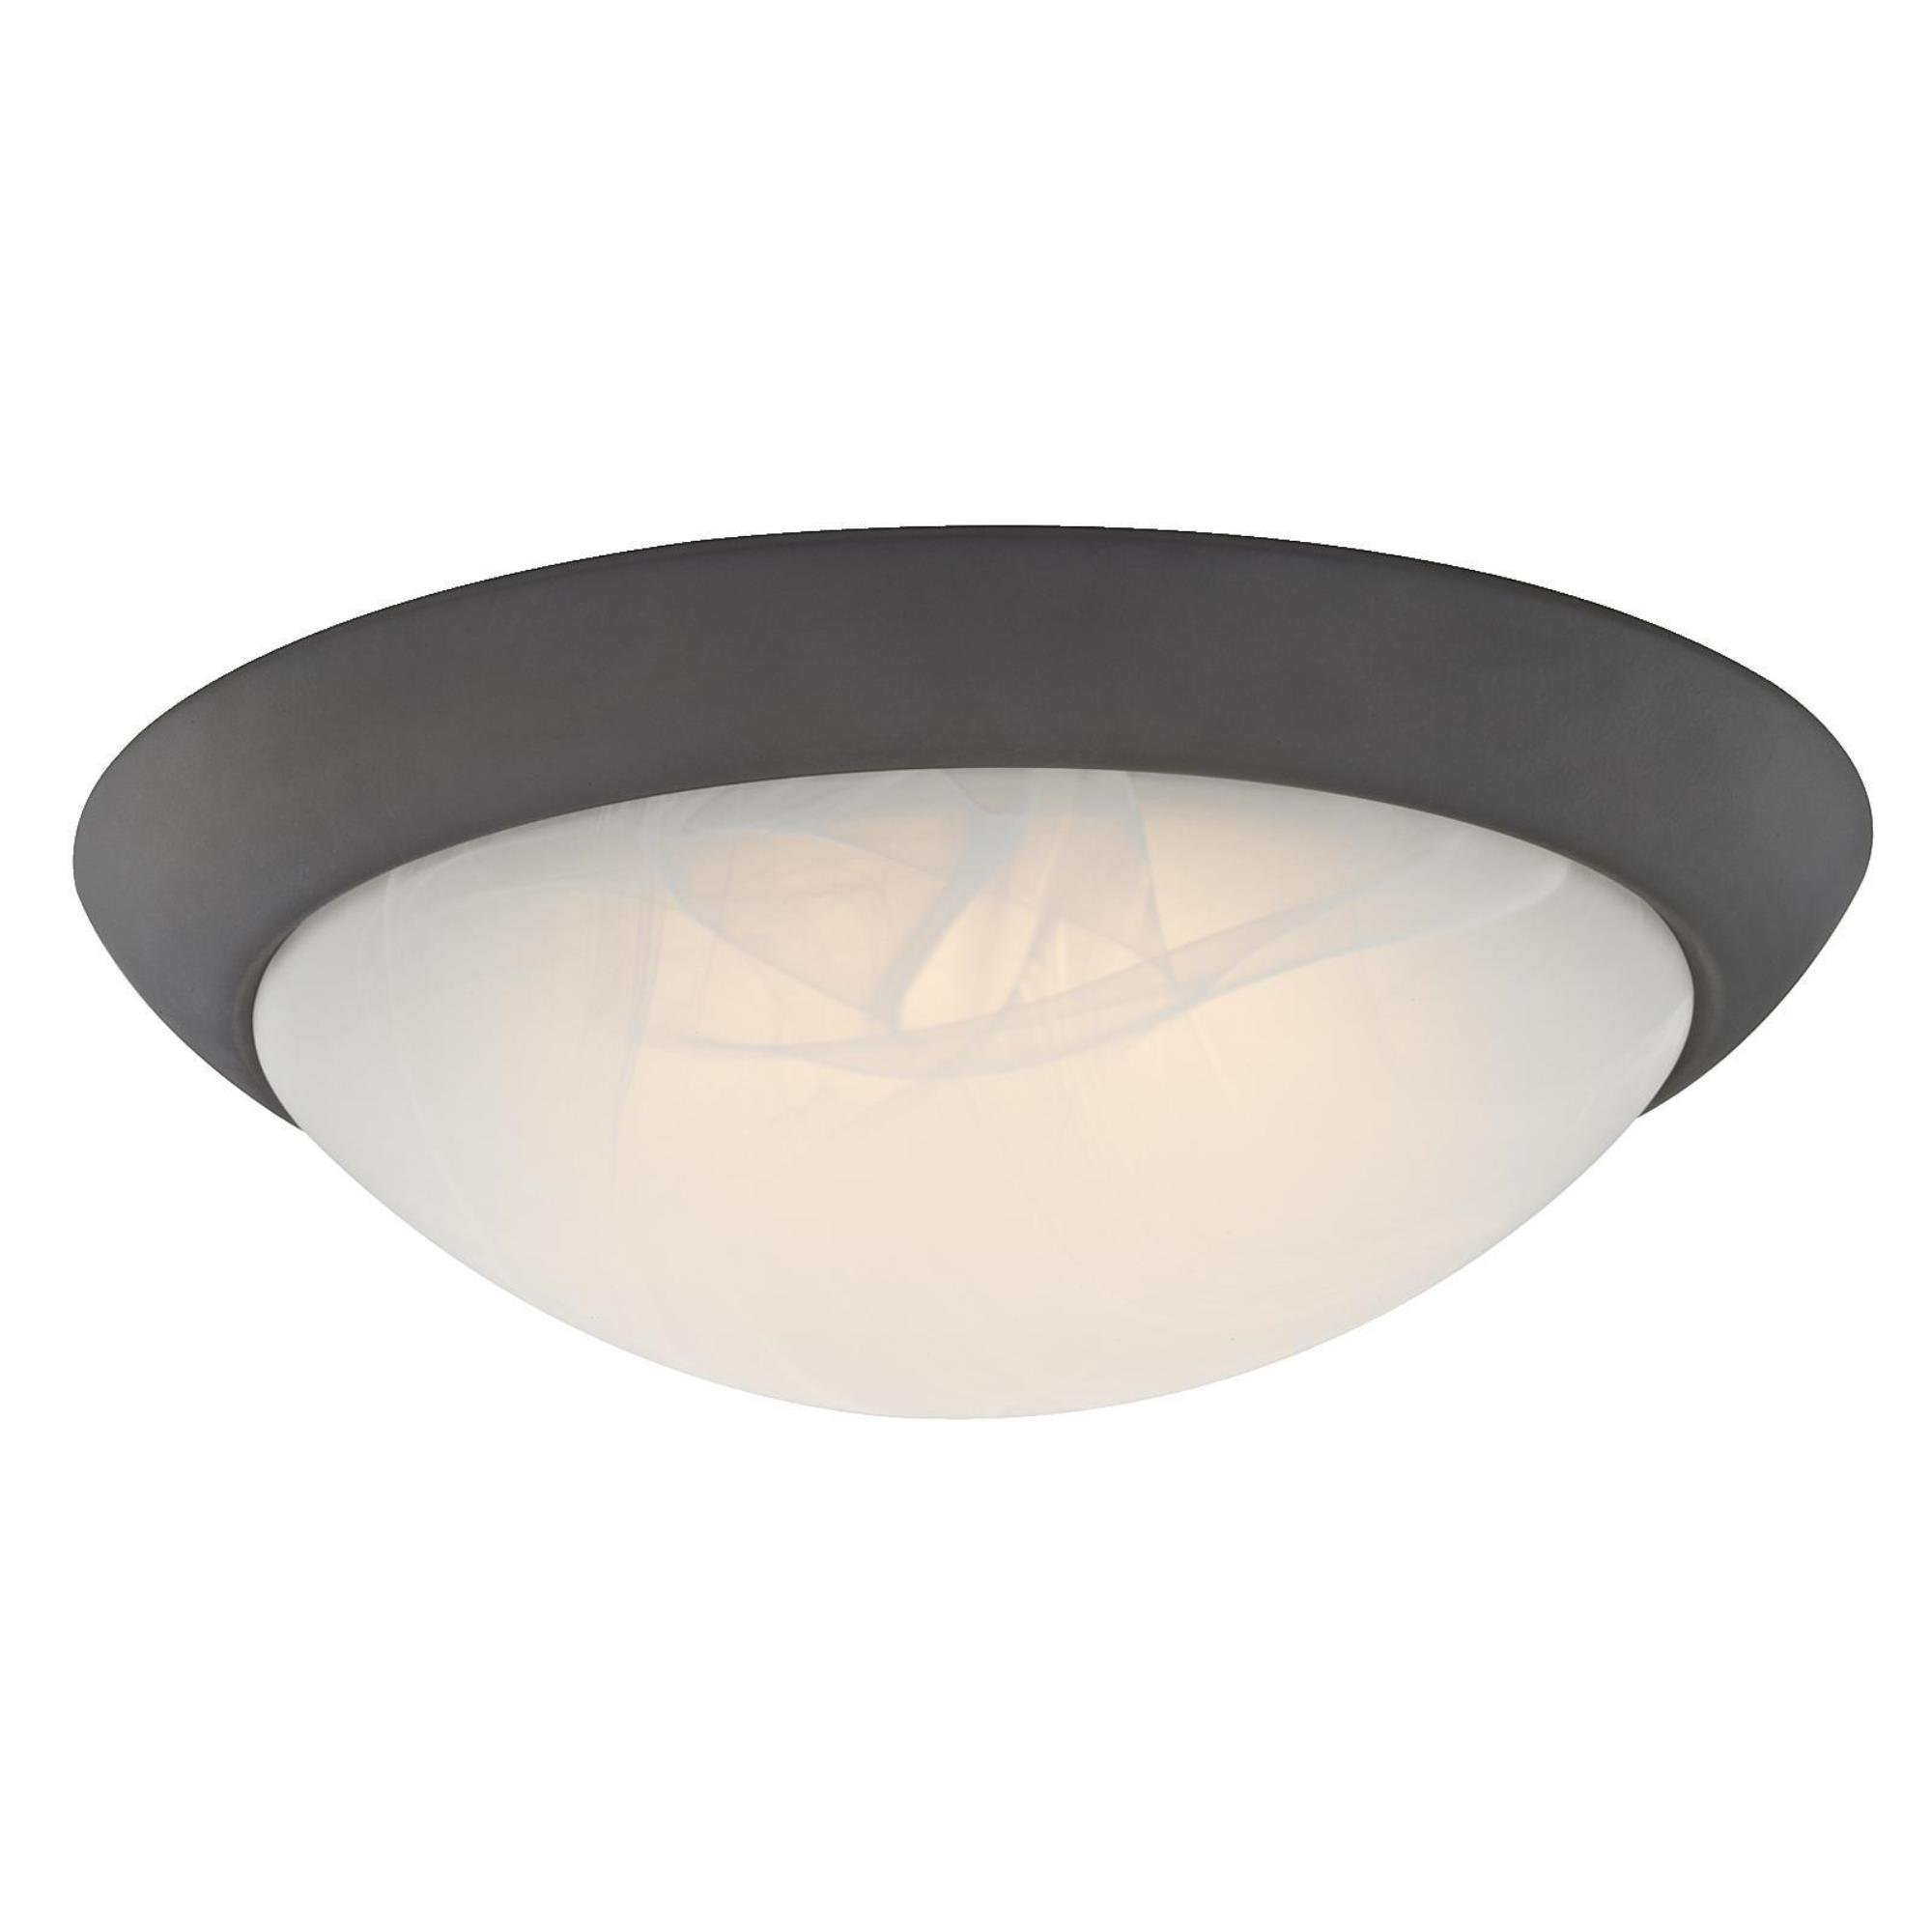 6308900 11-Inch LED Indoor Flush Mount Ceiling Fixture, Oil Rubbed Bronze Finish with White Alabaster Glass